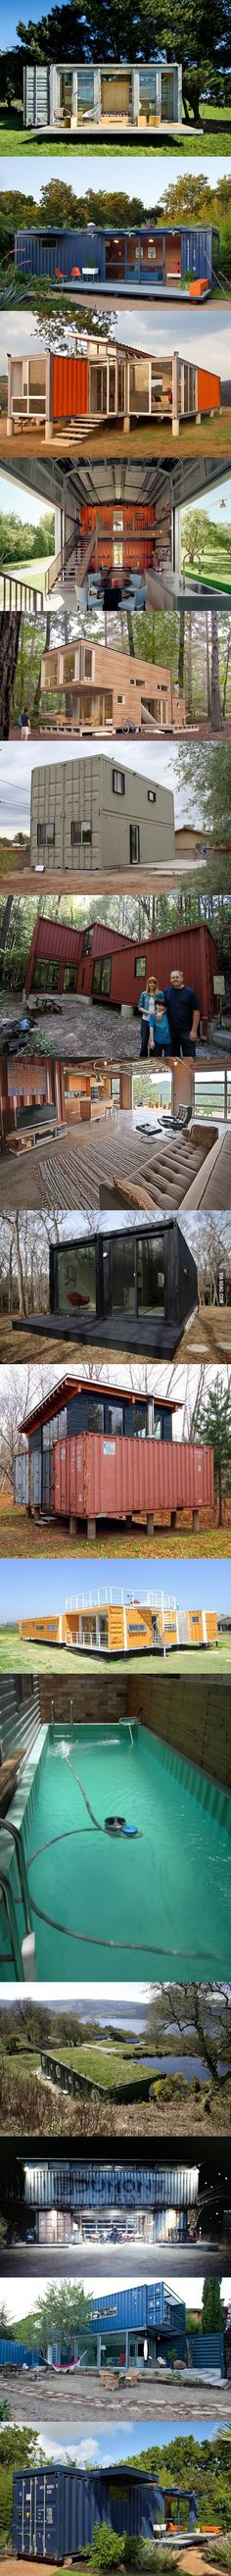 Who Else Wants Simple Step-By-Step Plans To Design And Build A Container Home From Scratch? Building A Container Home, Container Cabin, Cargo Container, Container House Design, Container Architecture, Container Buildings, Sustainable Architecture, Amazing Architecture, Shipping Container Cost